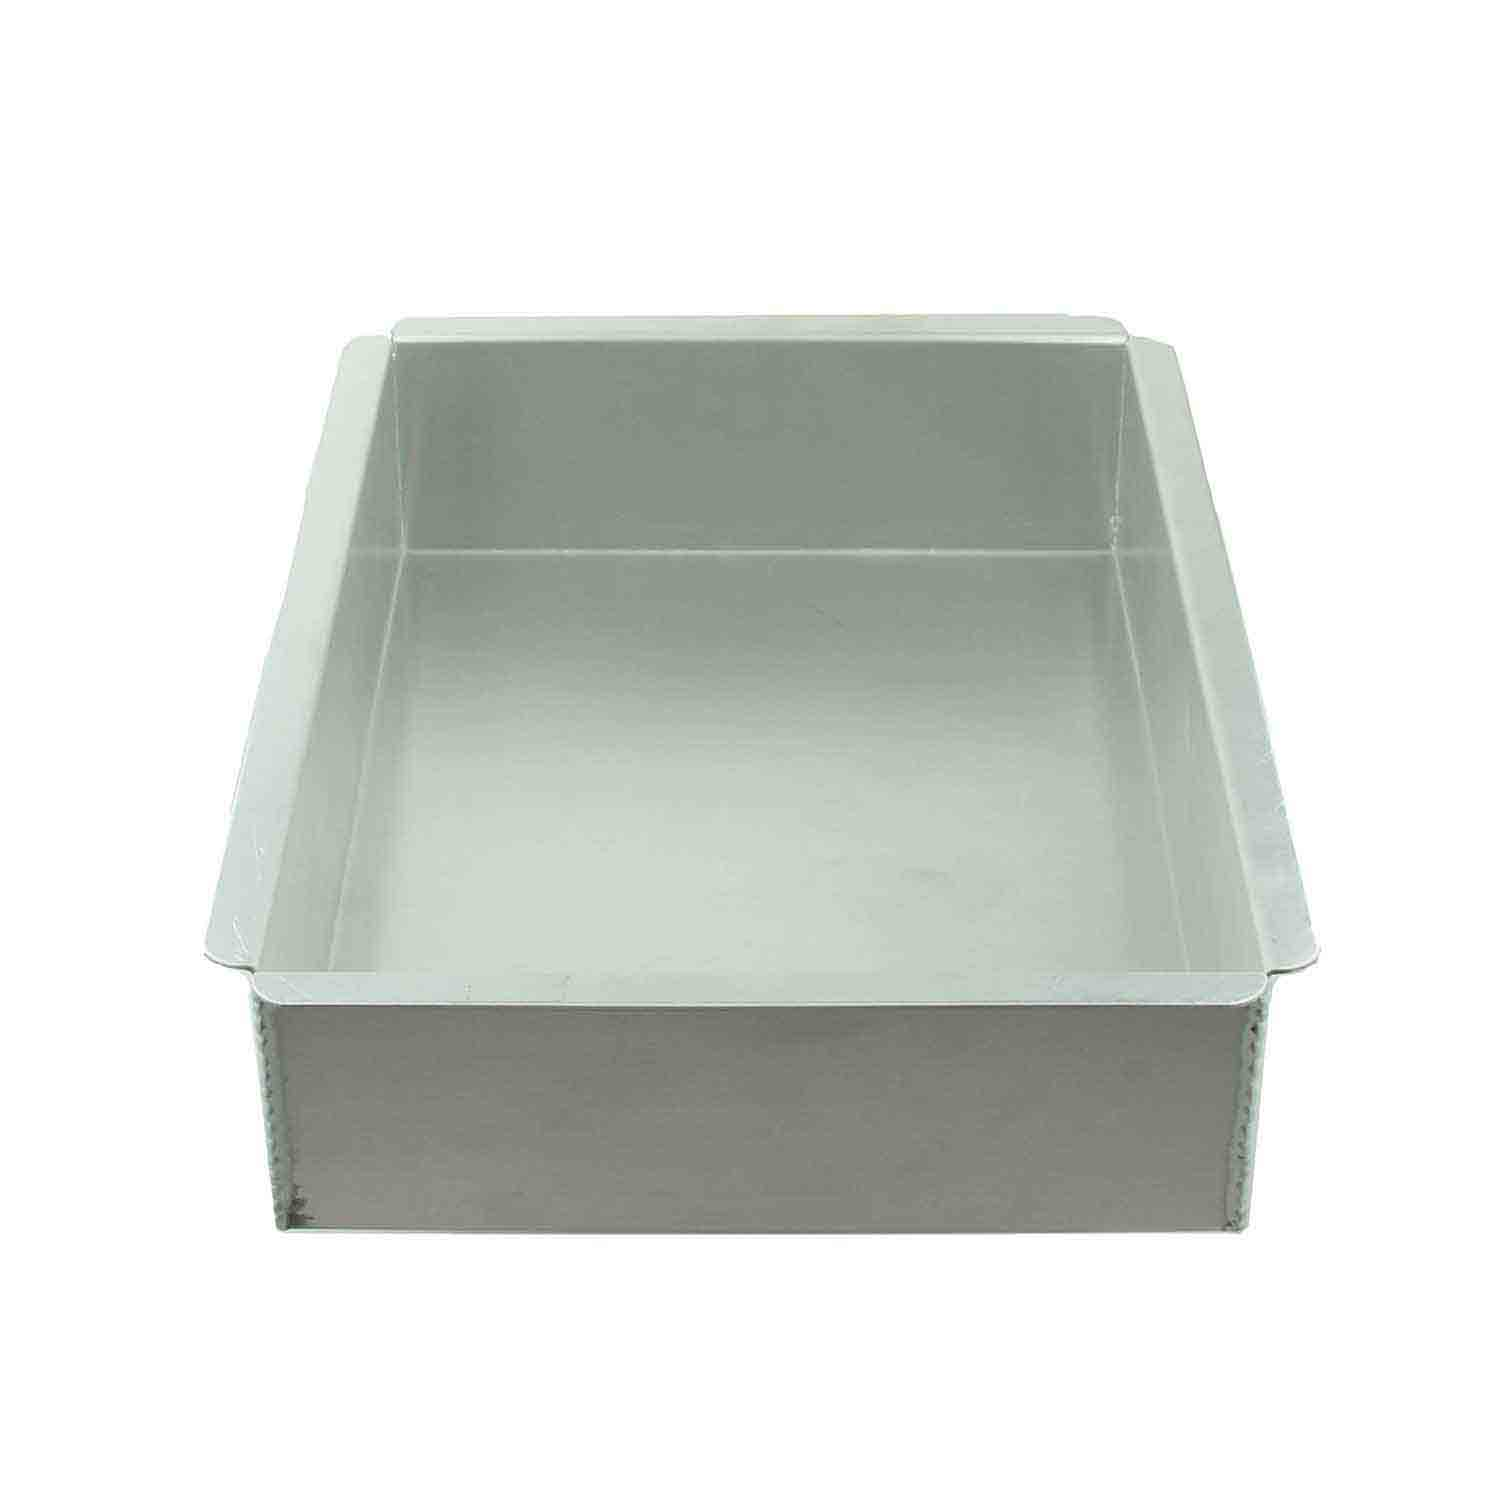 "9 x 13 x 3"" Quarter Sheet Cake Pan"